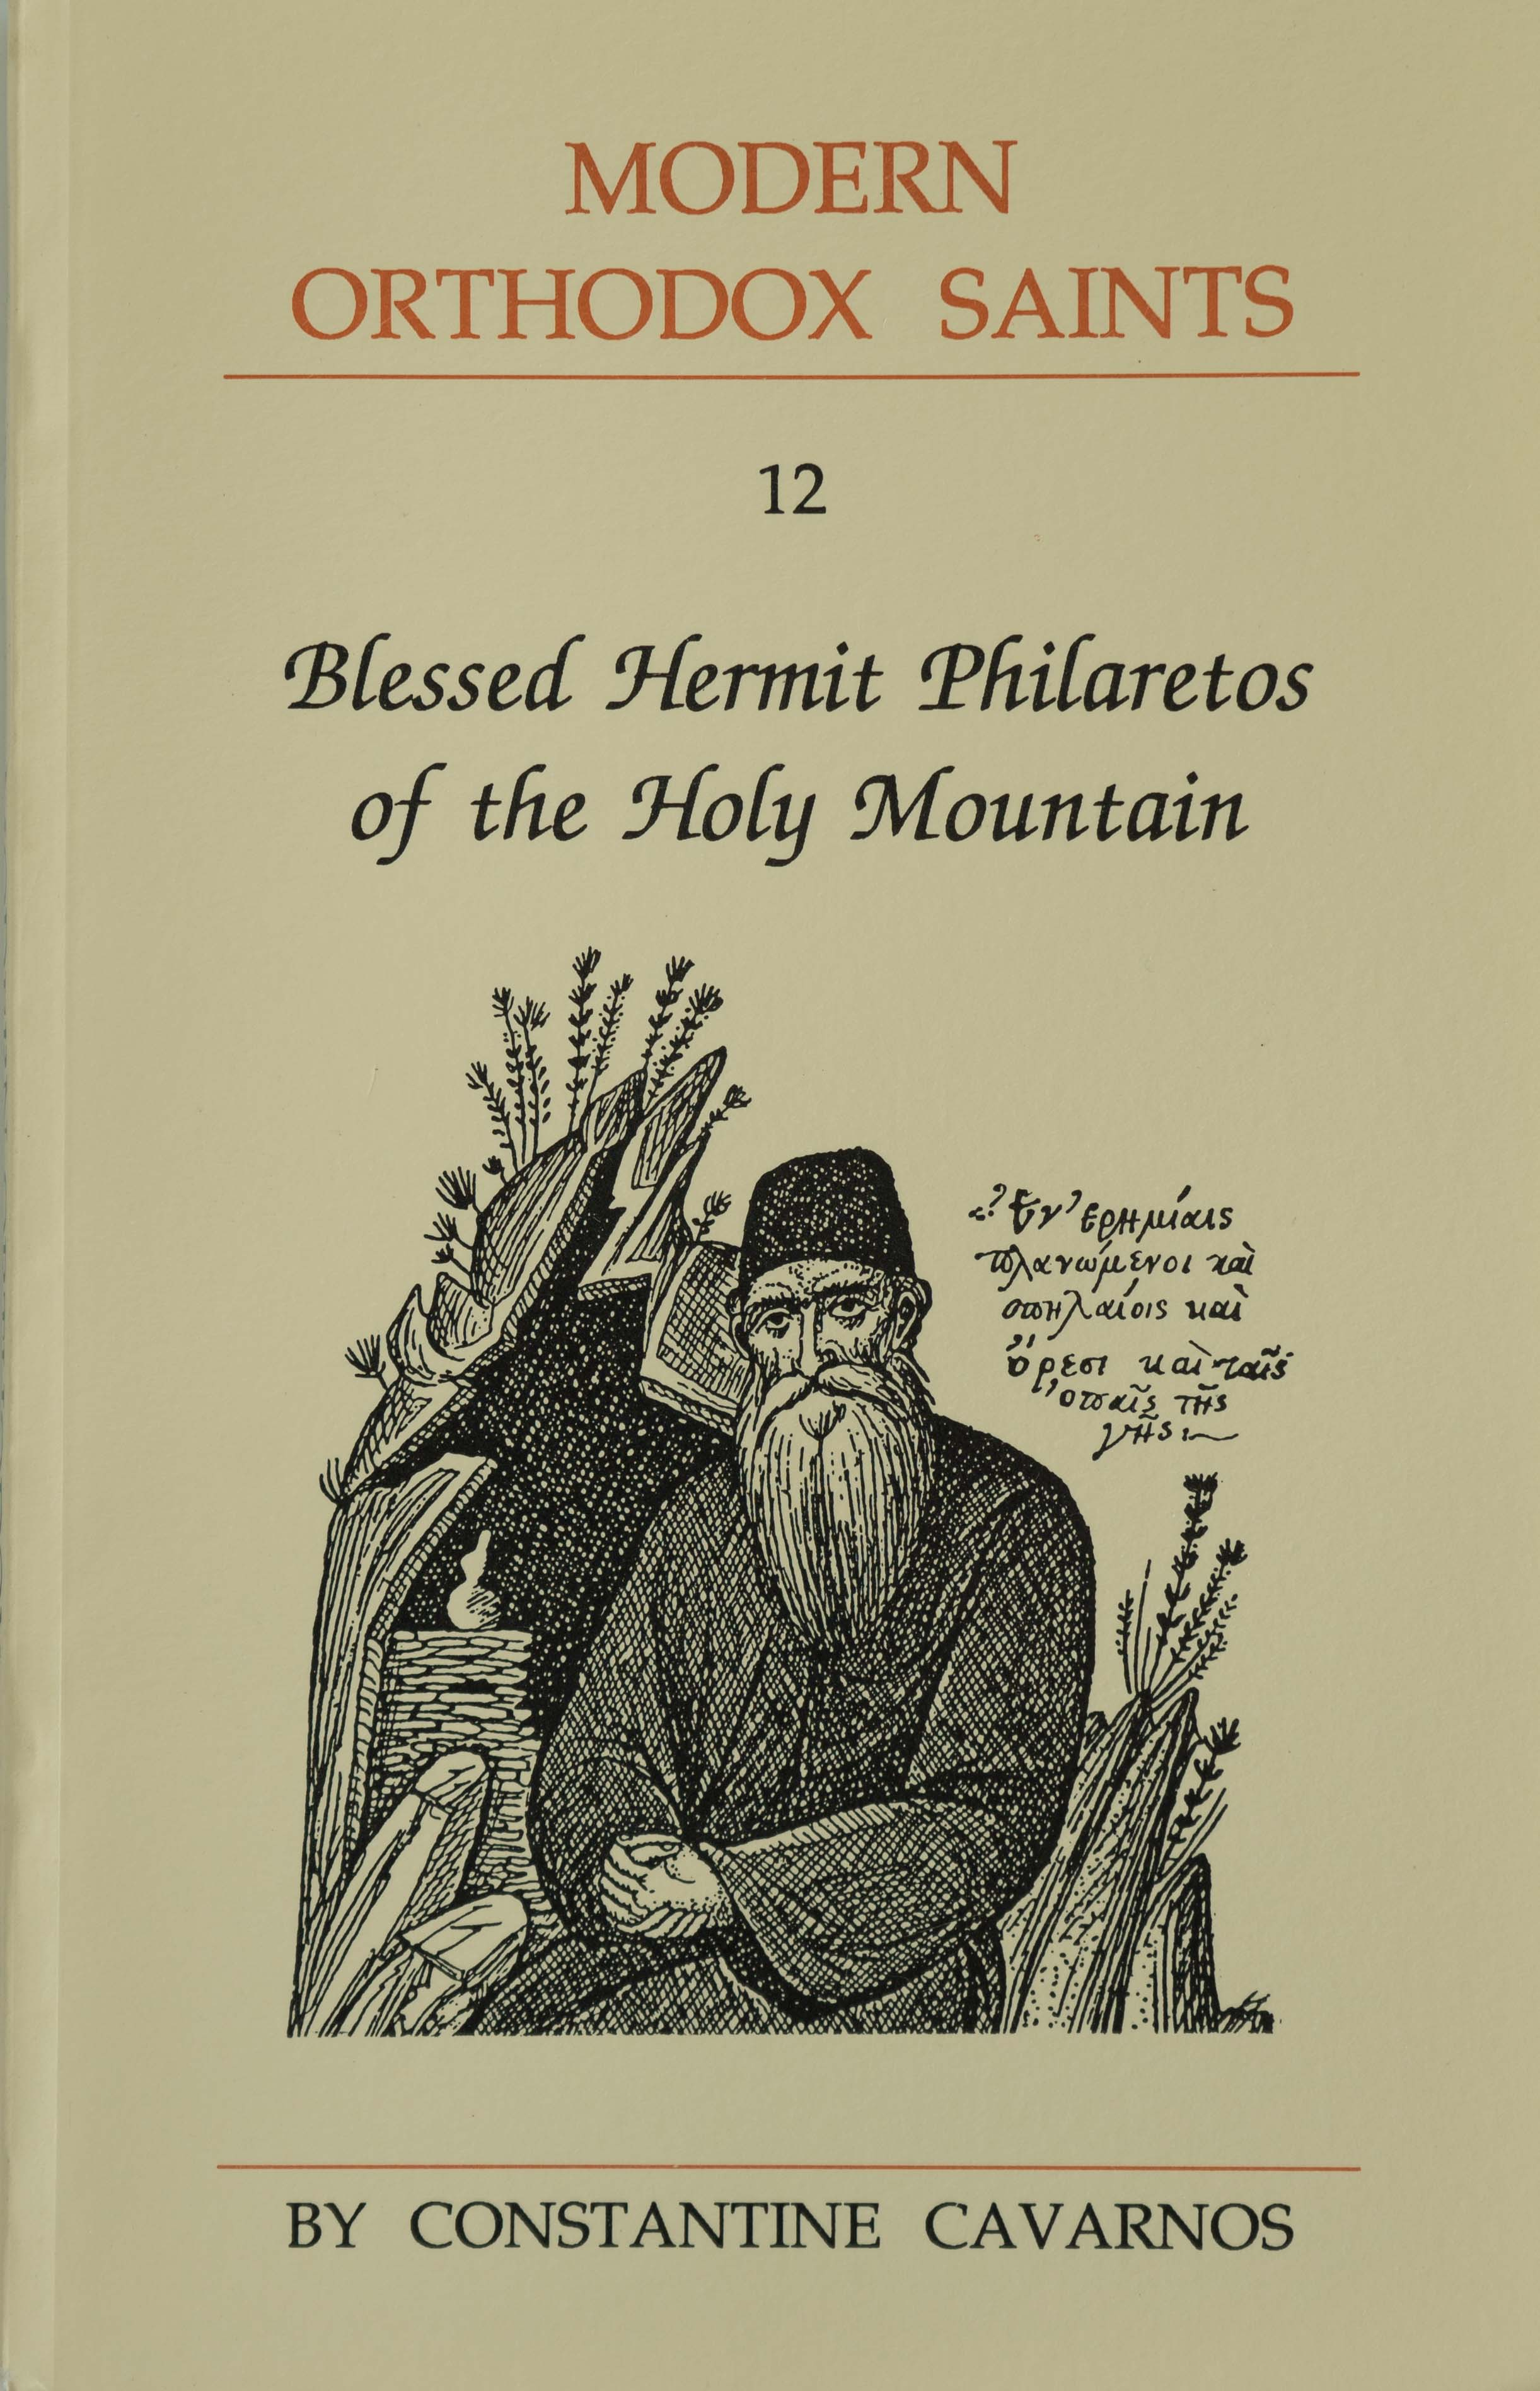 Modern Orthodox Saints 12: Blessed Hermit Philaretos of the Holy Mountain